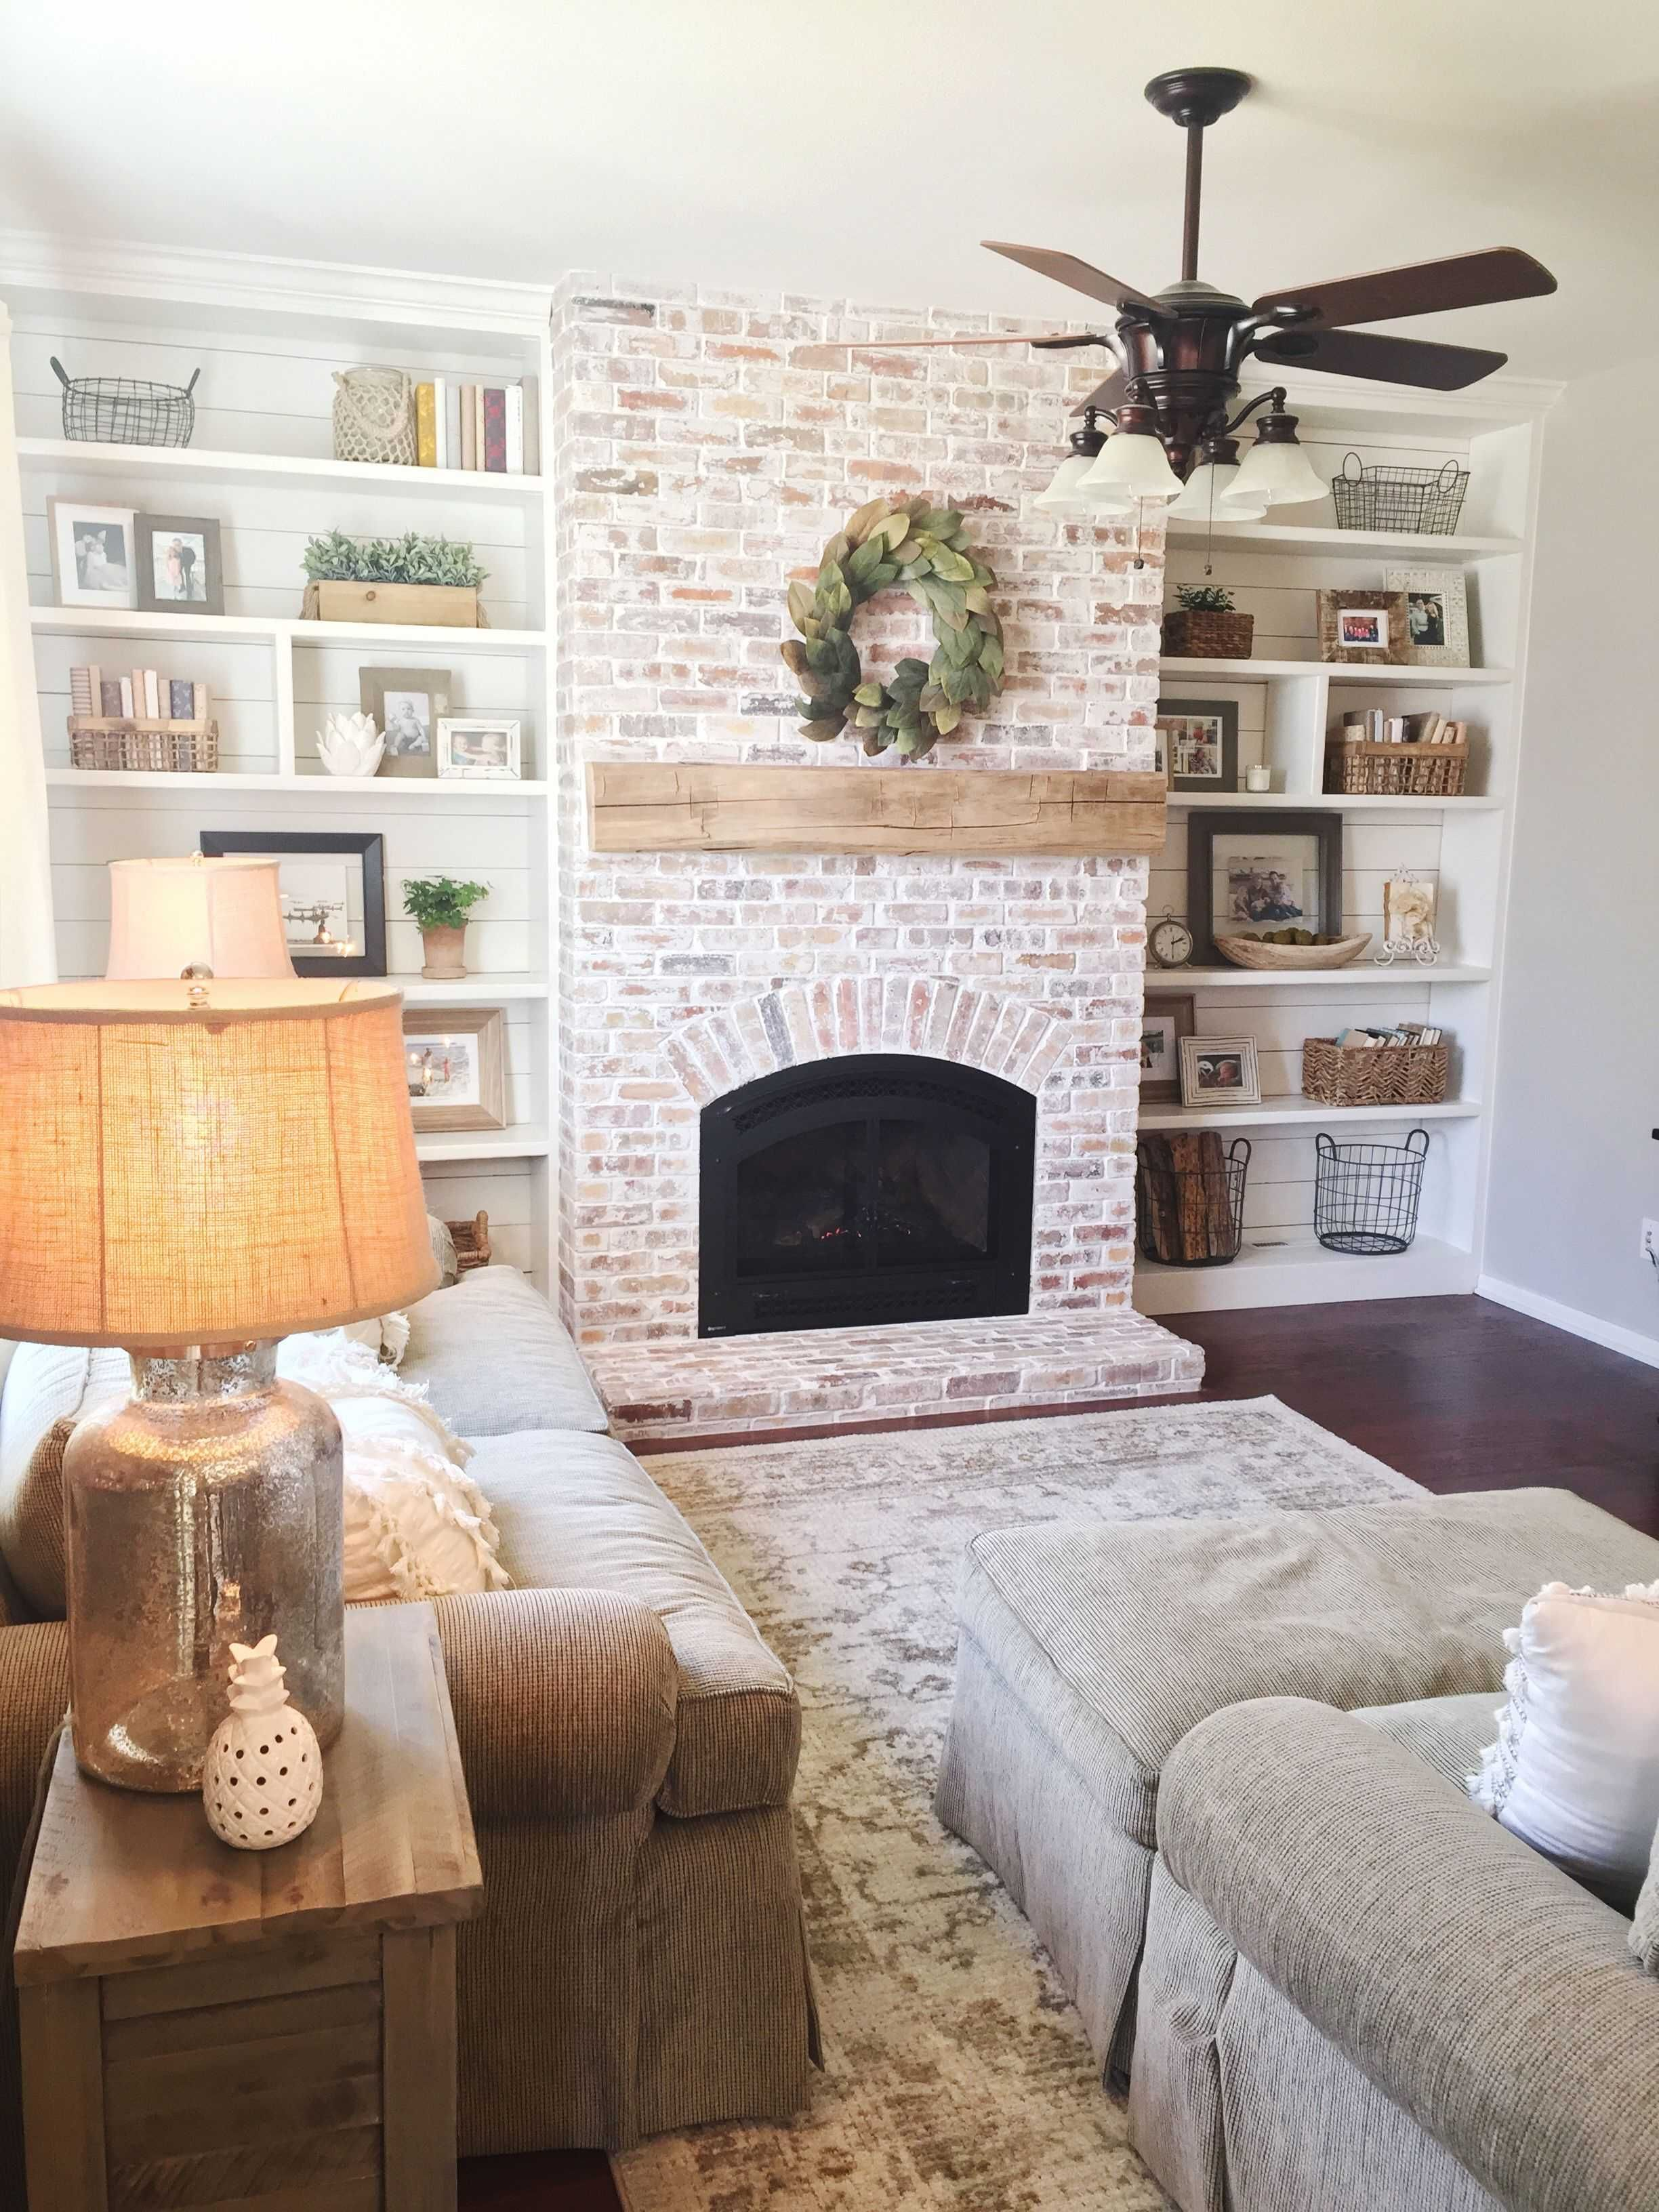 Awesome Rustic Farmhouse Brick Fireplace Modern Farmhouse Living Room Decor Farmhouse Decor Living Room Farm House Living Room